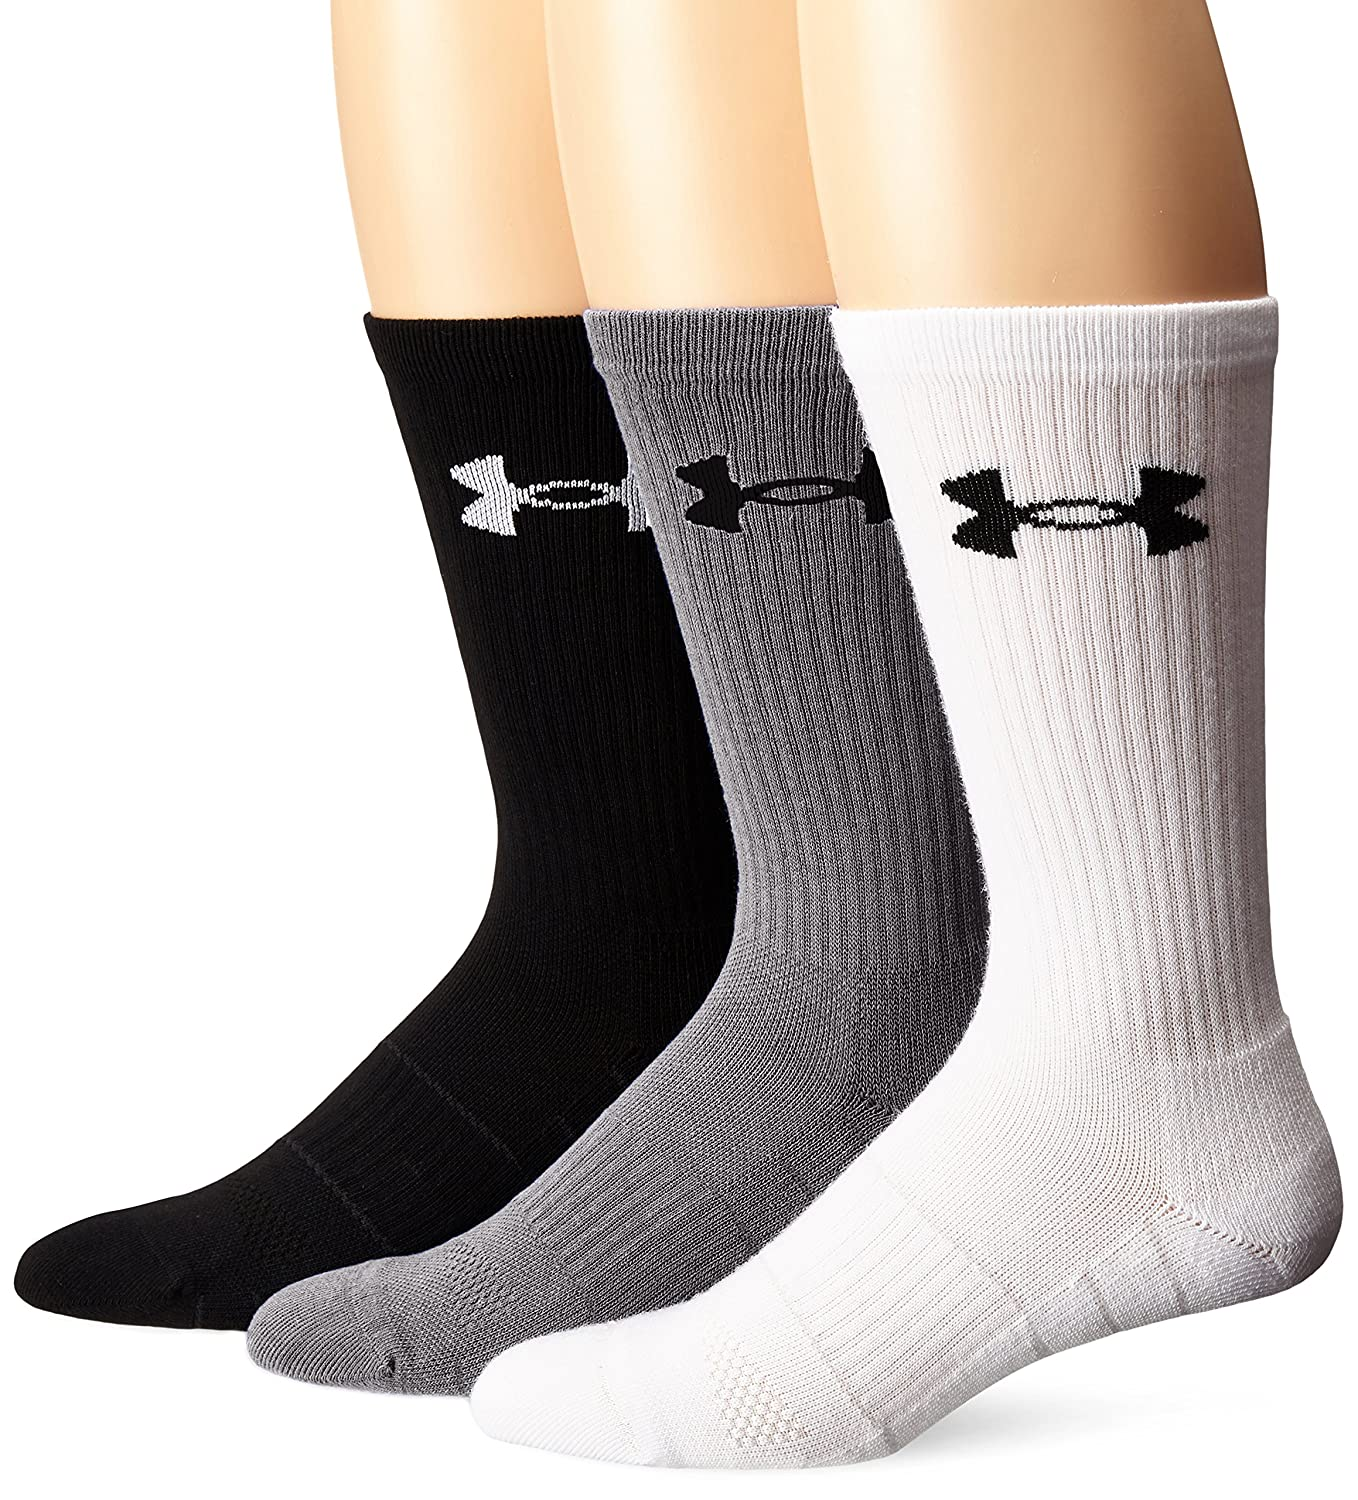 ef31f274b0 under armour men's crew socks : Under Armour Men's Elevated Performance  Crew Socks (3 .